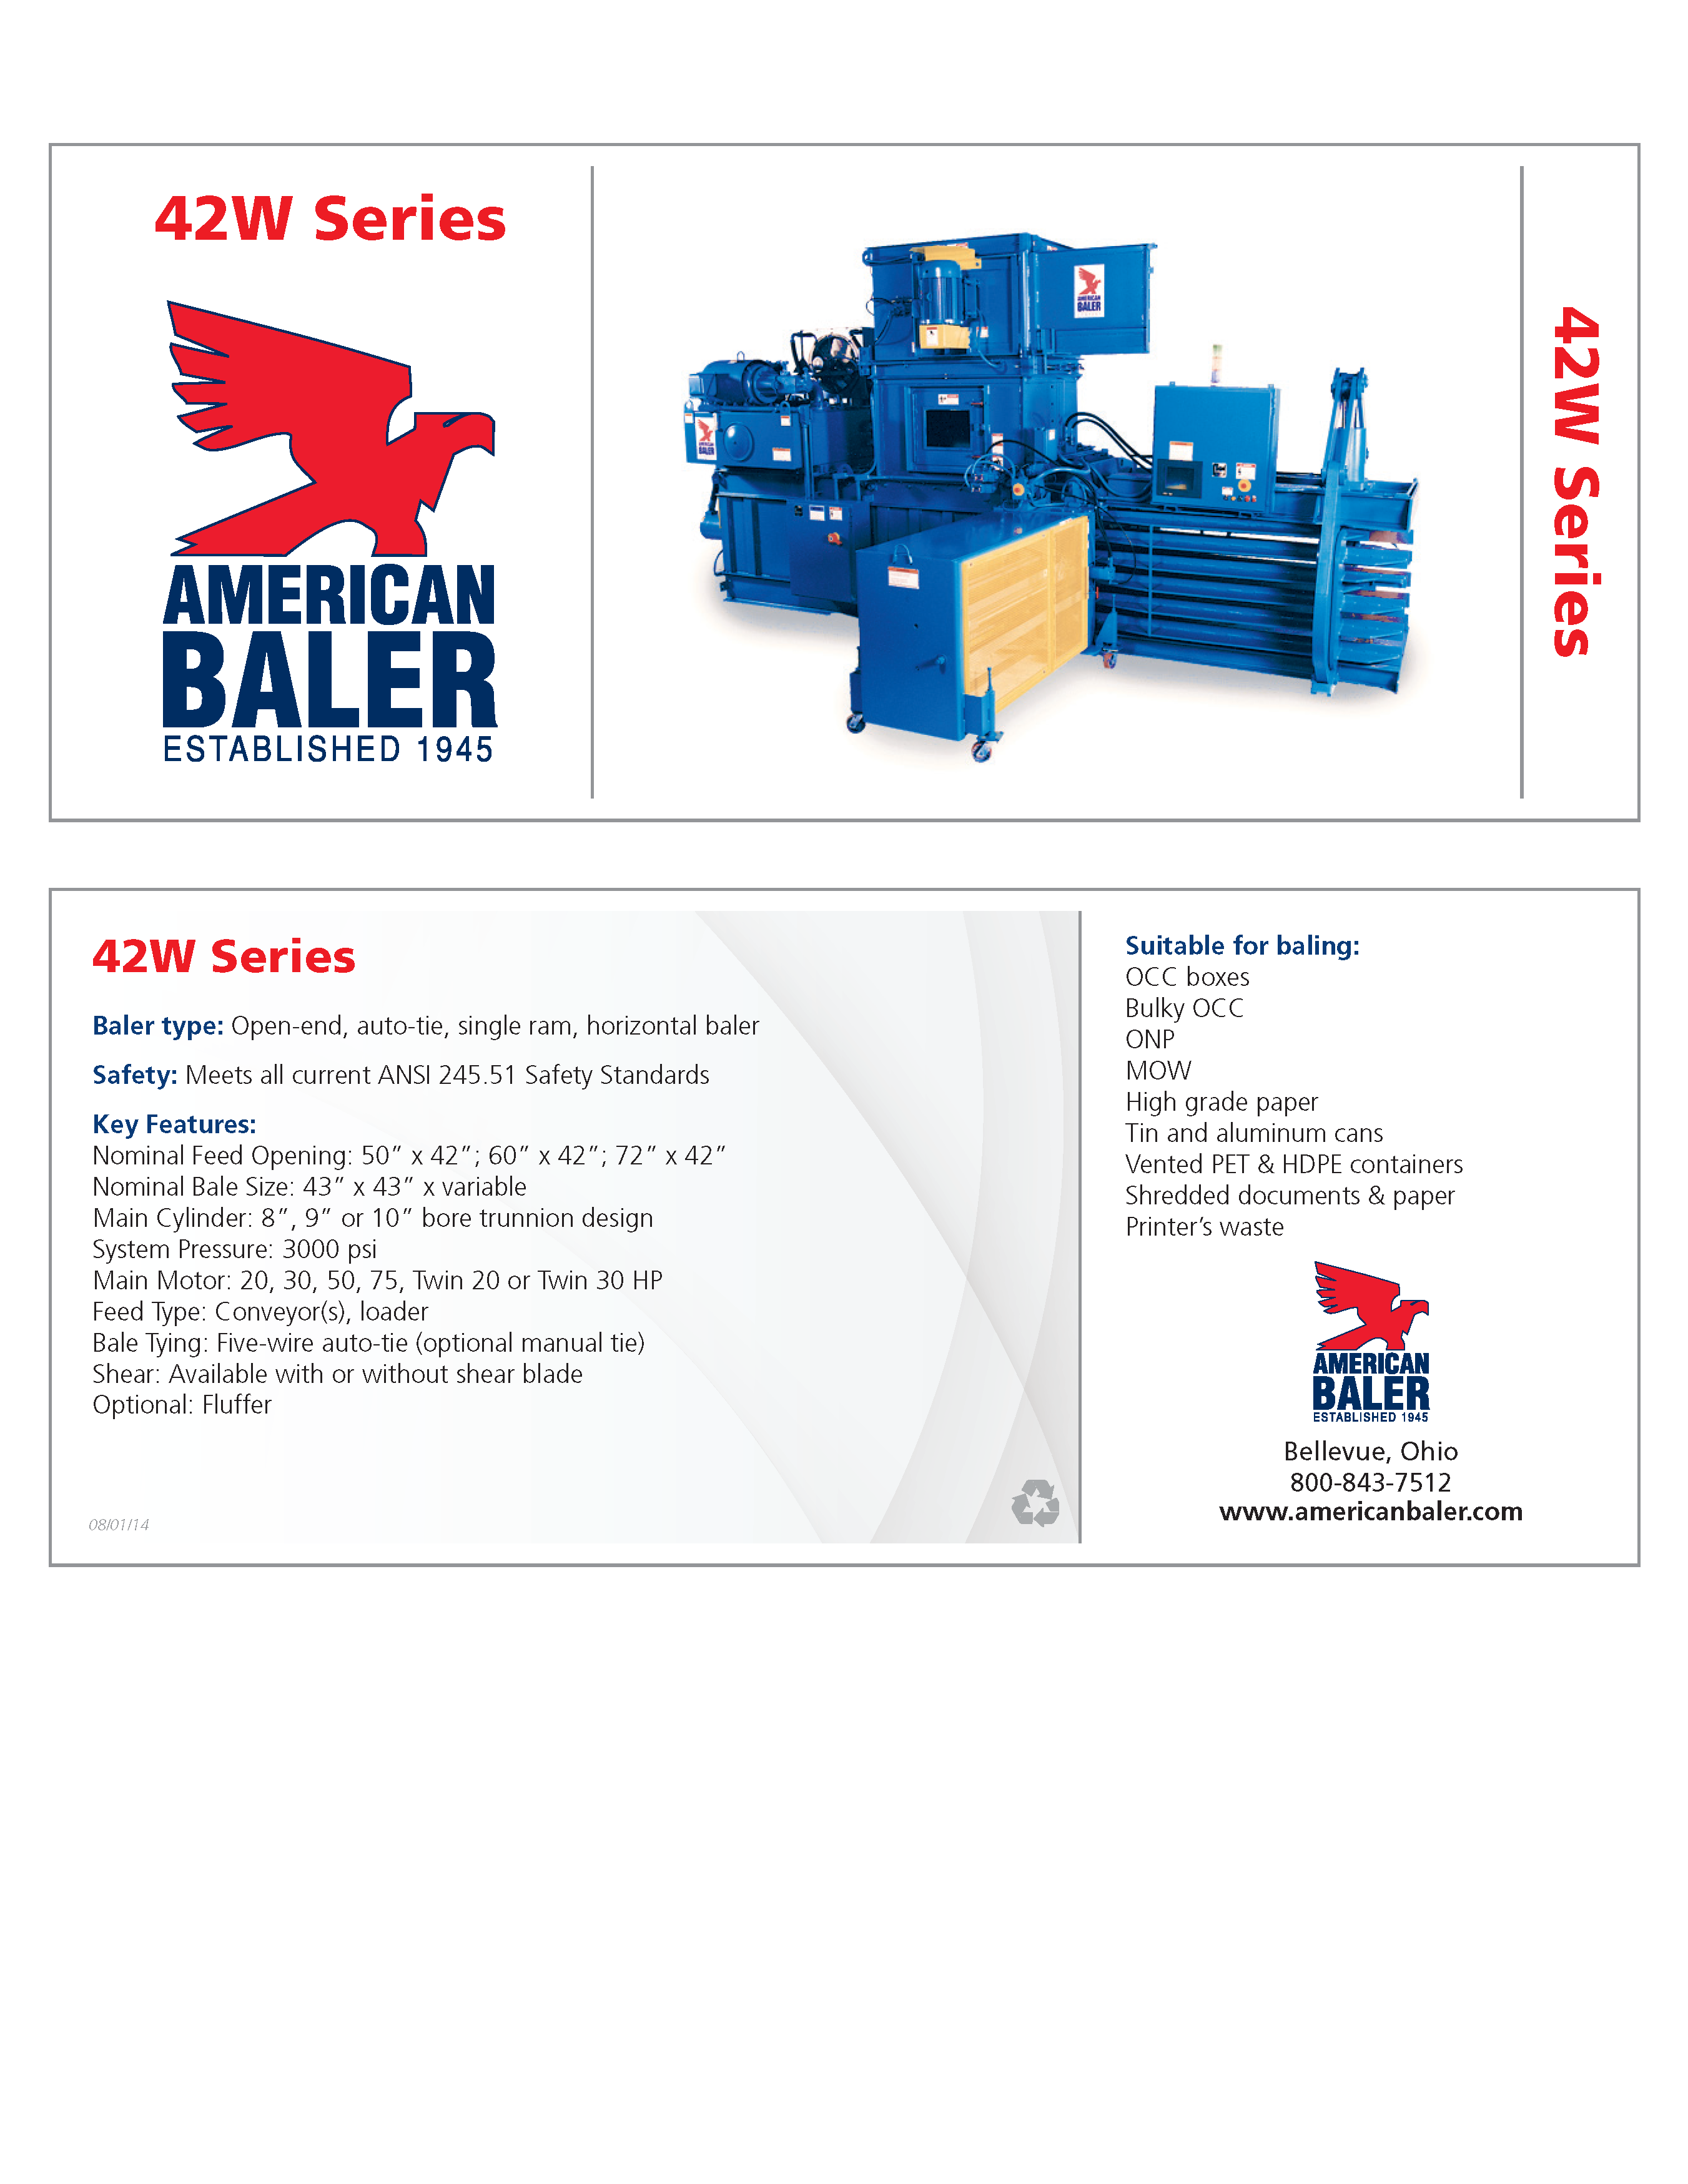 Learn more about the 42WS Series Baler in the American Baler Brochure.